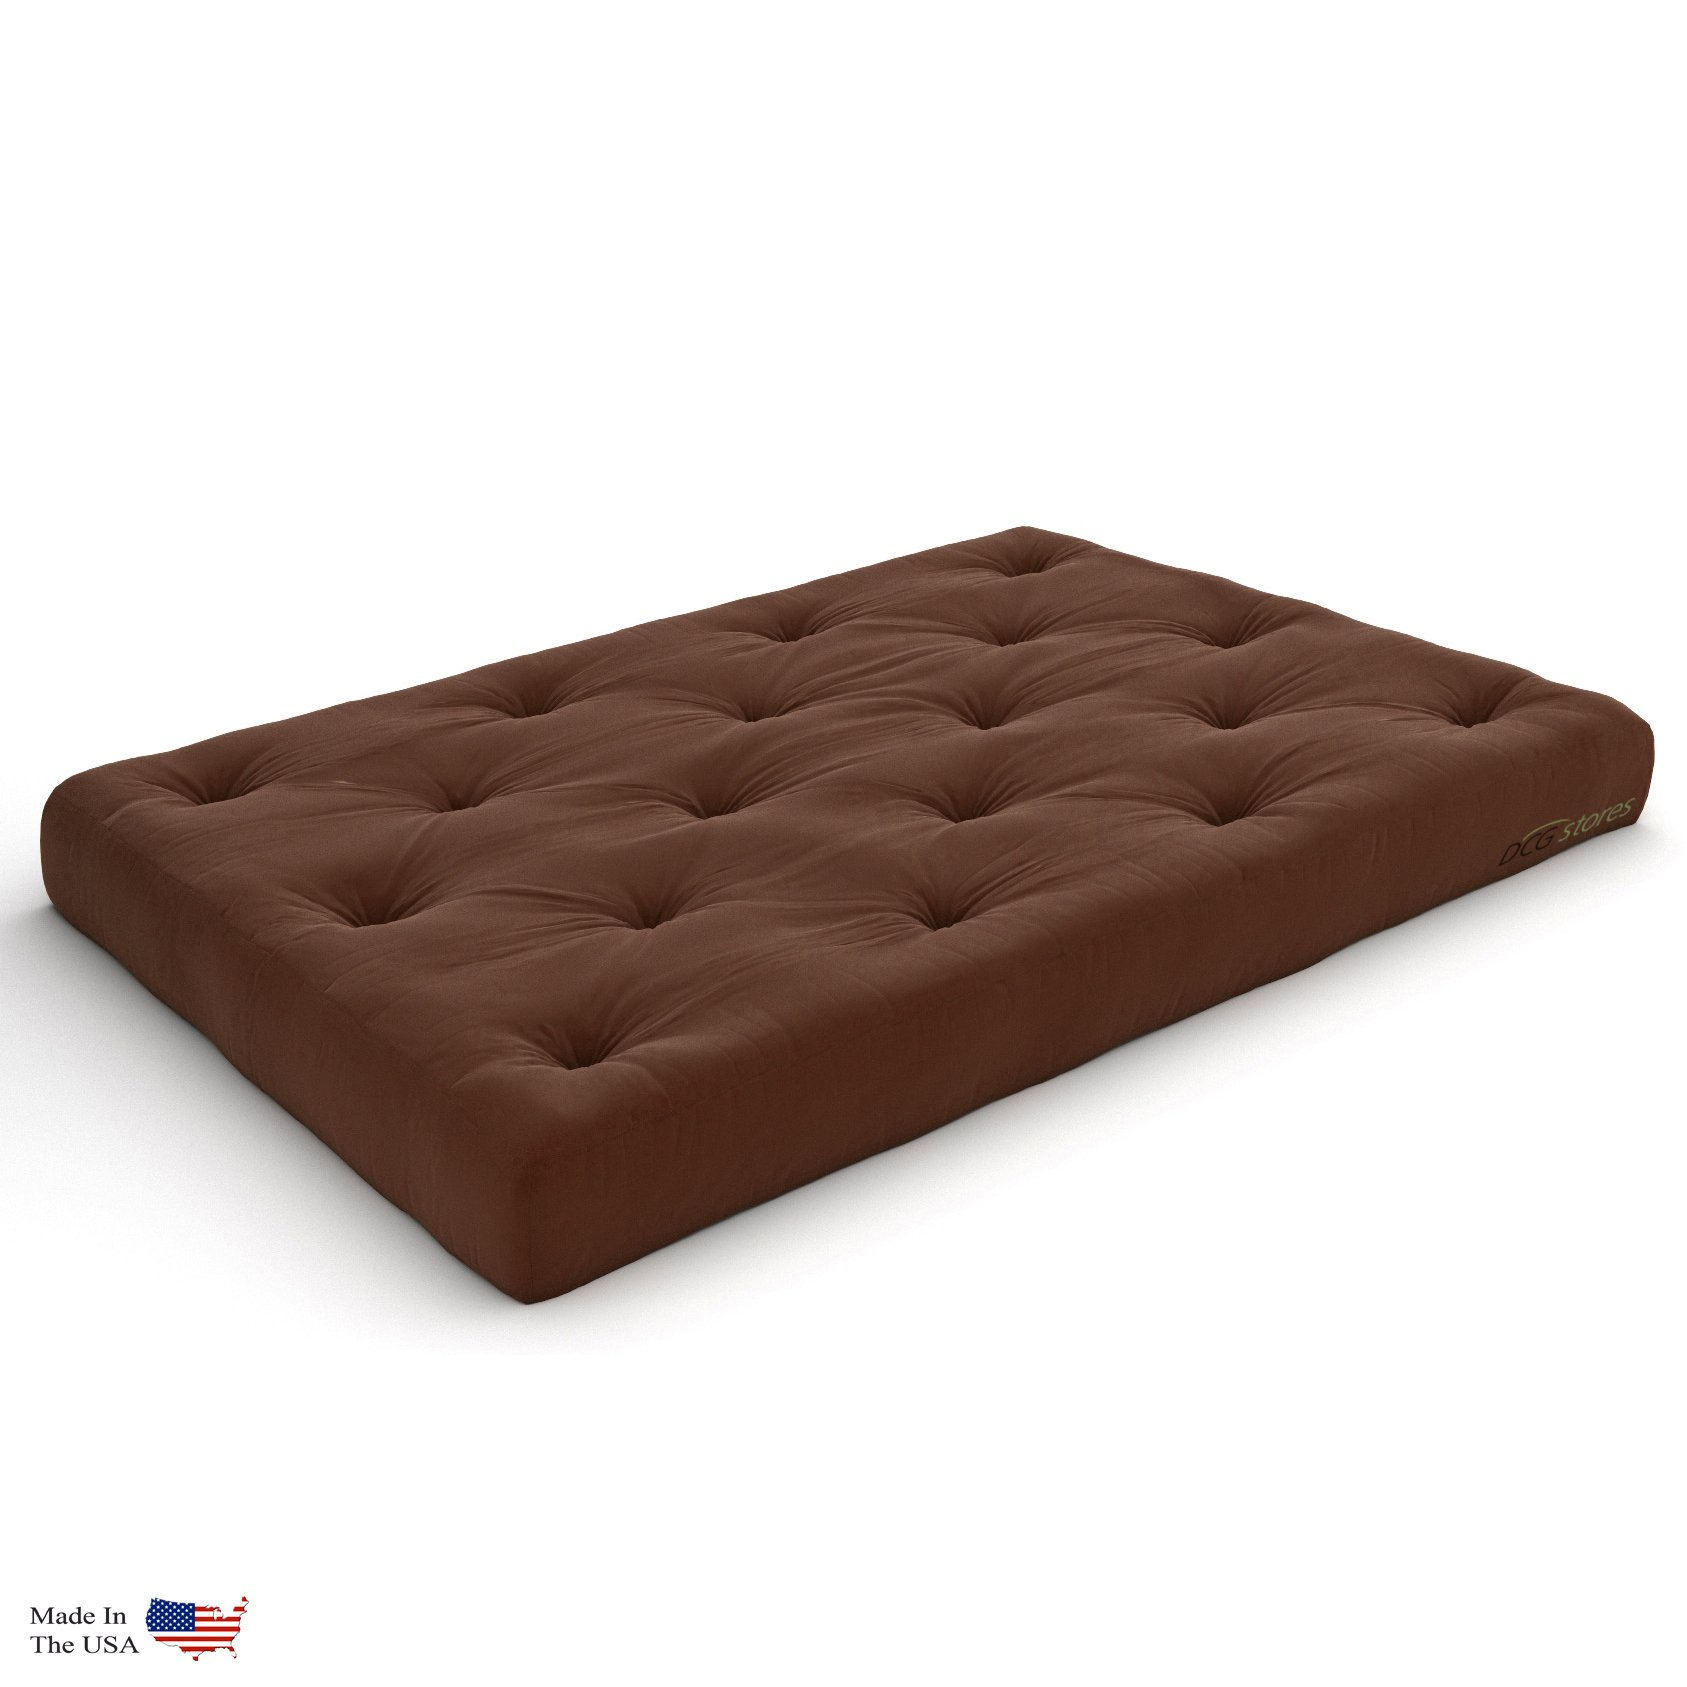 Nirvana Futons Extra Thick Premium 10-Inch Queen Futon Mattress, Microfiber Fudge - Made in USA by Nirvana Futons